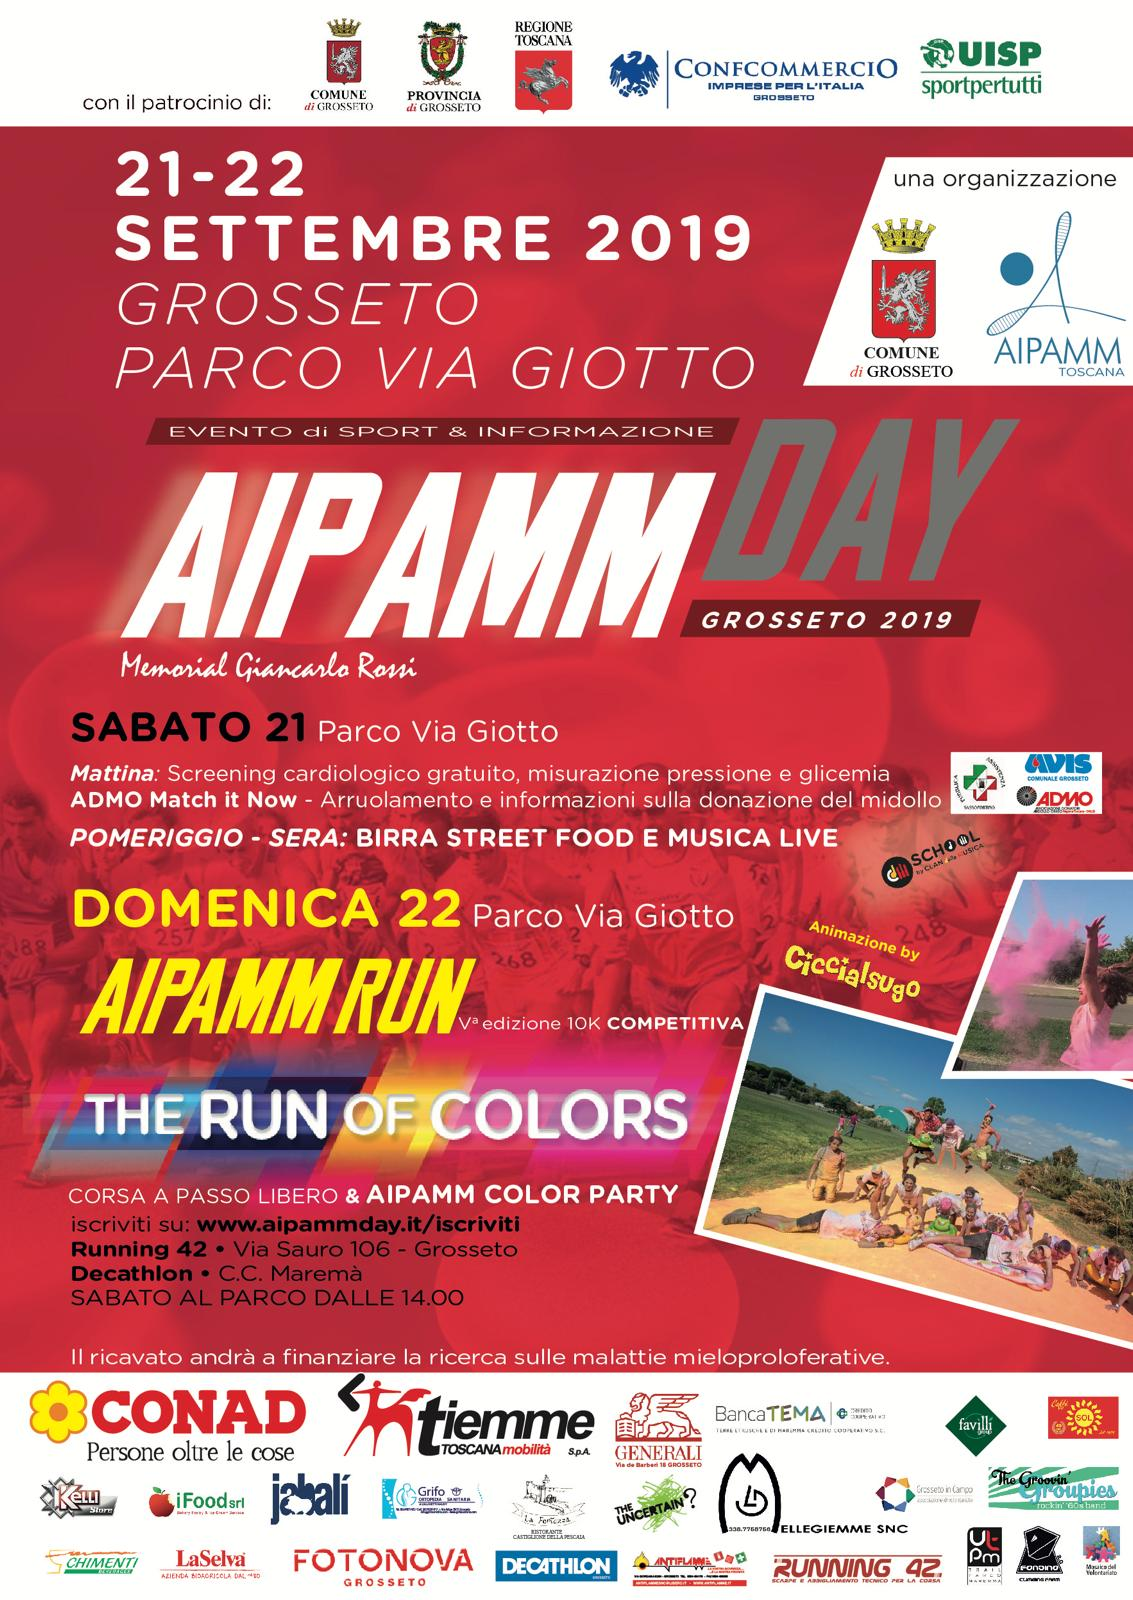 AIPAMM DAY 2019 | Grosseto